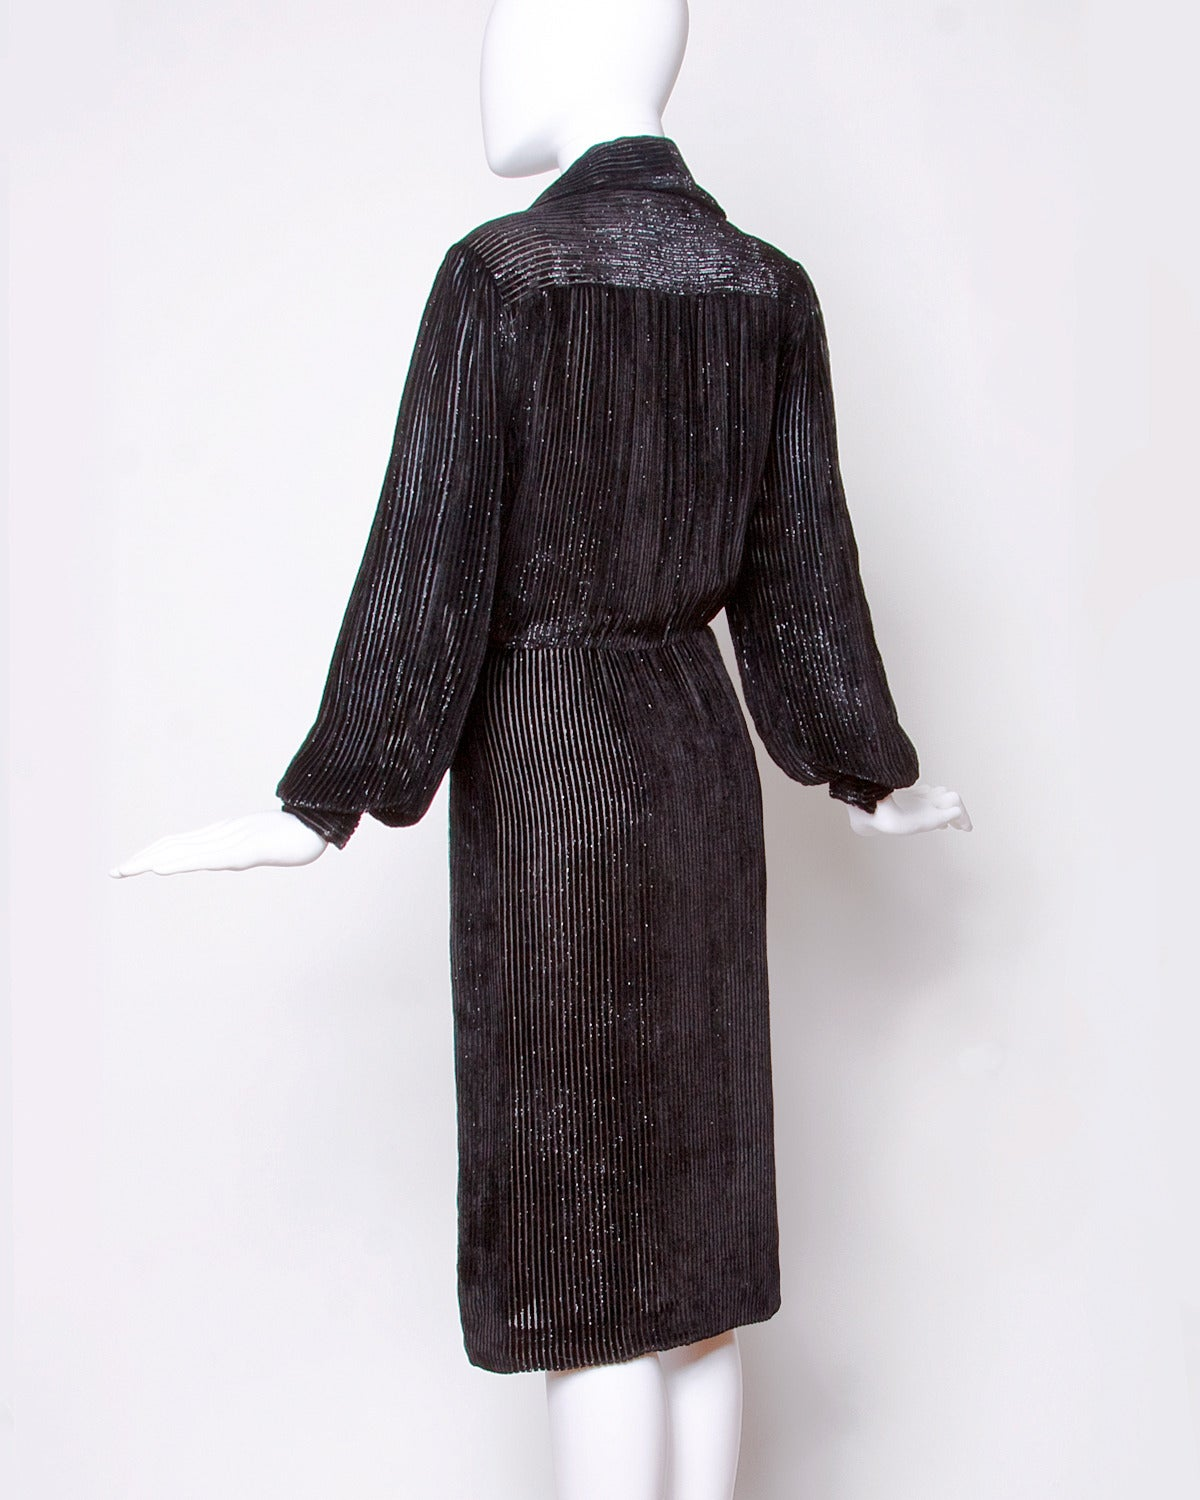 Travilla for I. Magnin Vintage Black Silk Velvet Cocktail Dress In Excellent Condition For Sale In Sparks, NV